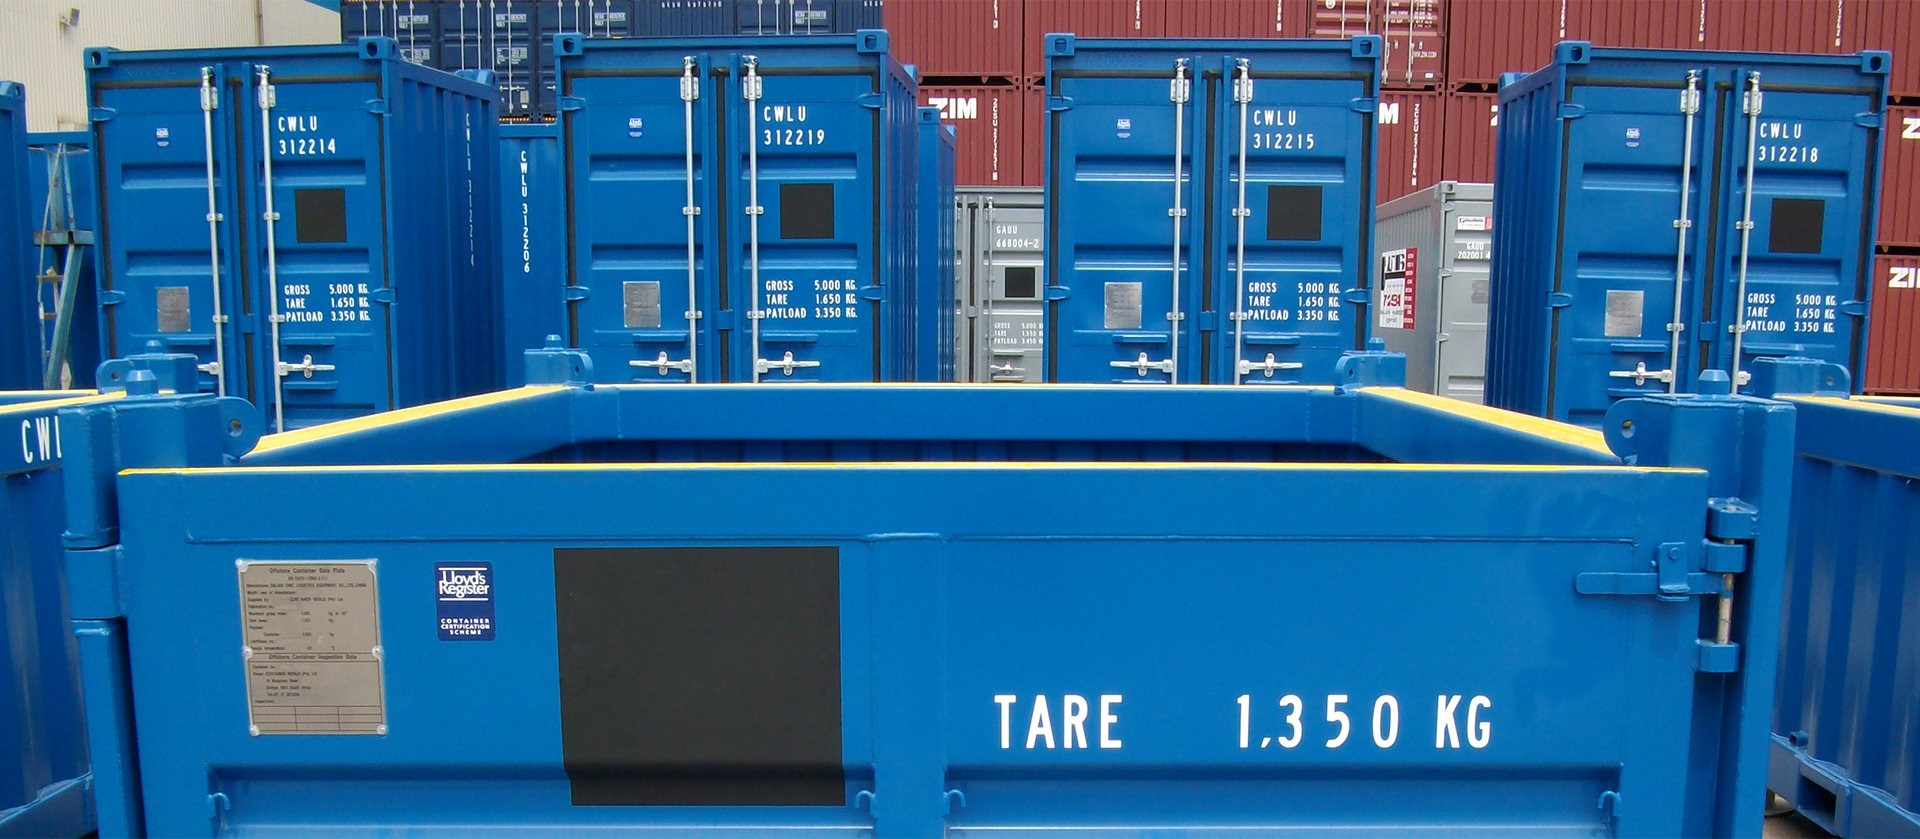 Offshore storage, refrigeration and tank containers DNV 2.7-1/2, converted containers fully furnished and multi-purpose